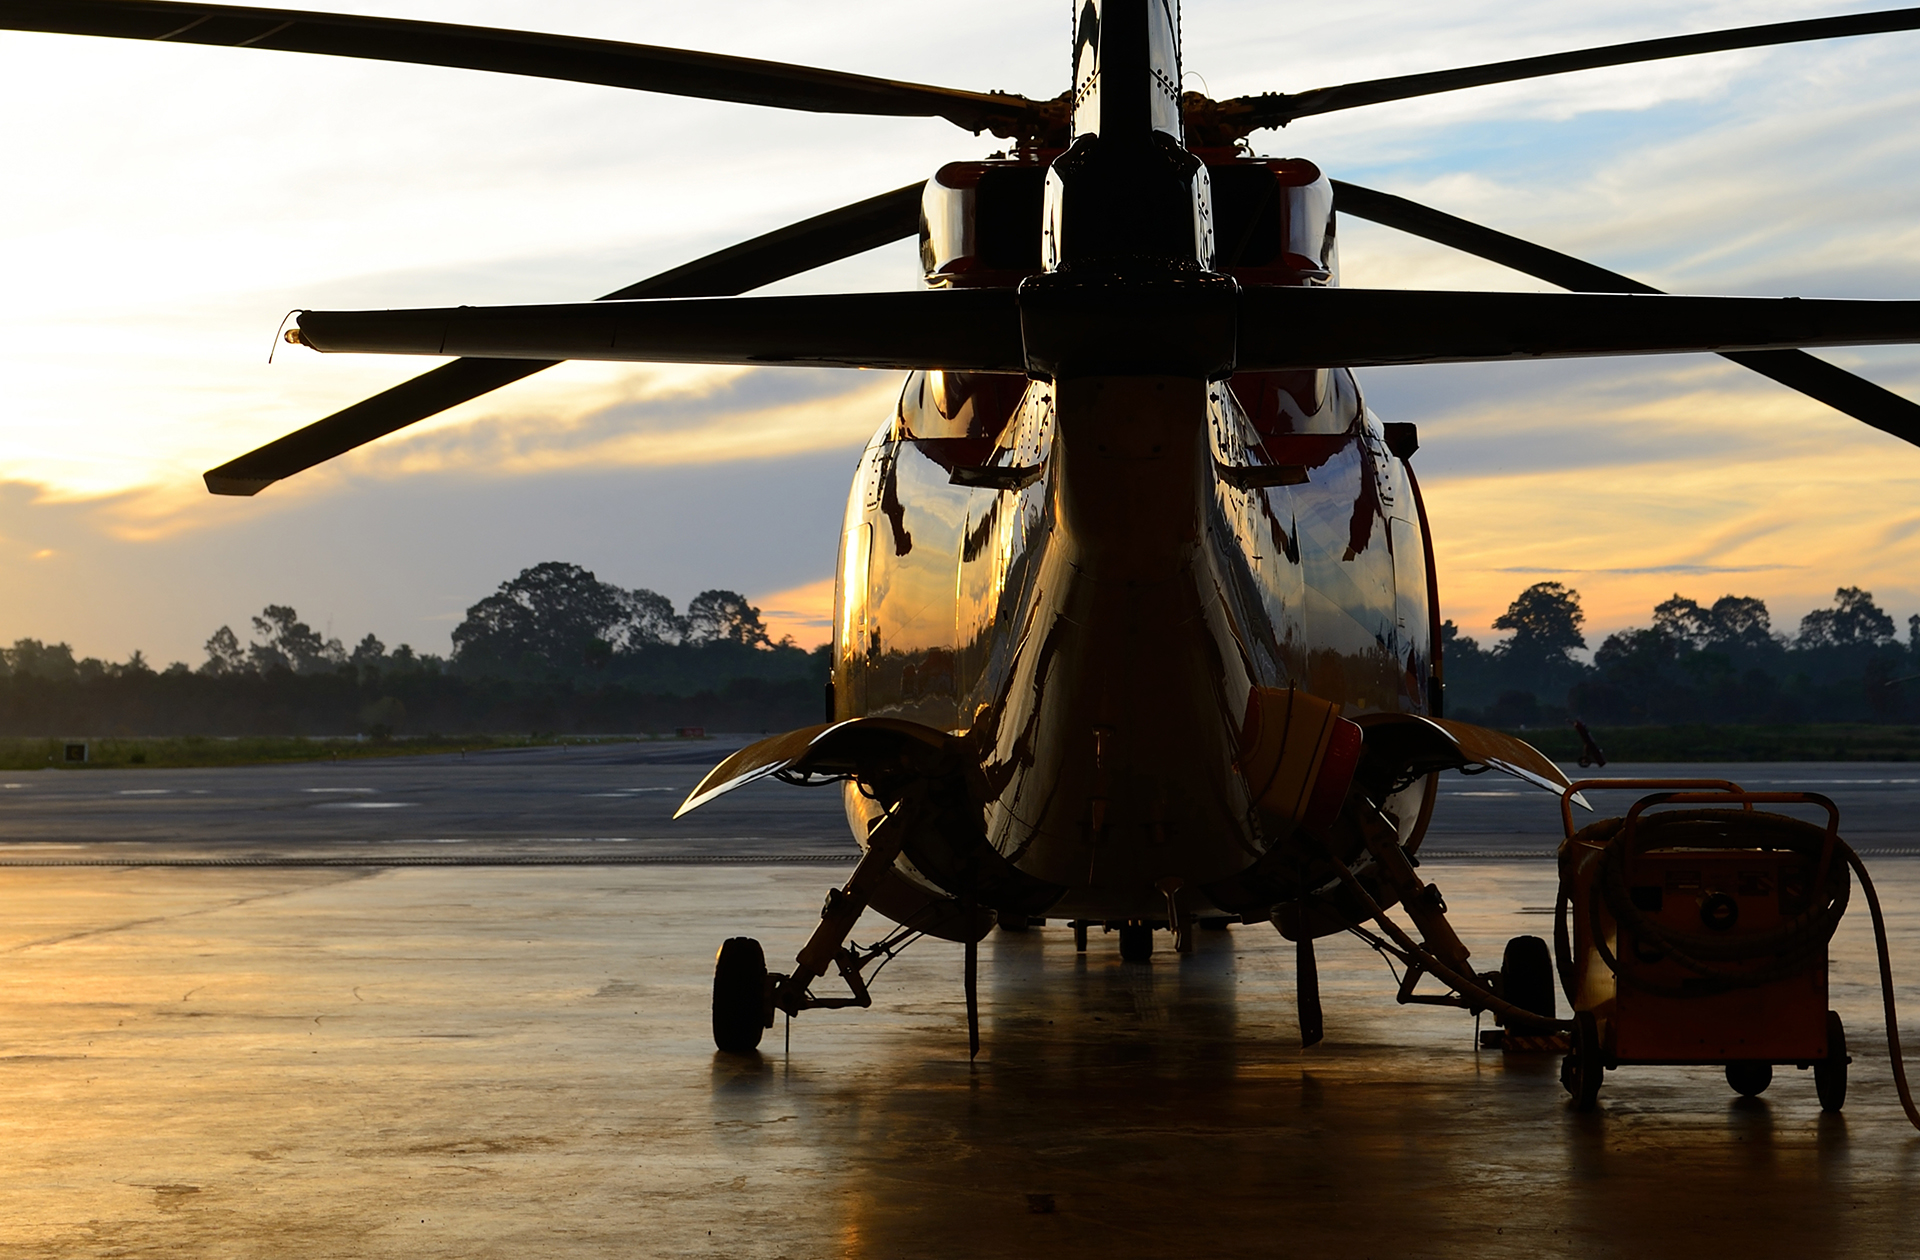 Helicopter maintenance in an aircraft hangar